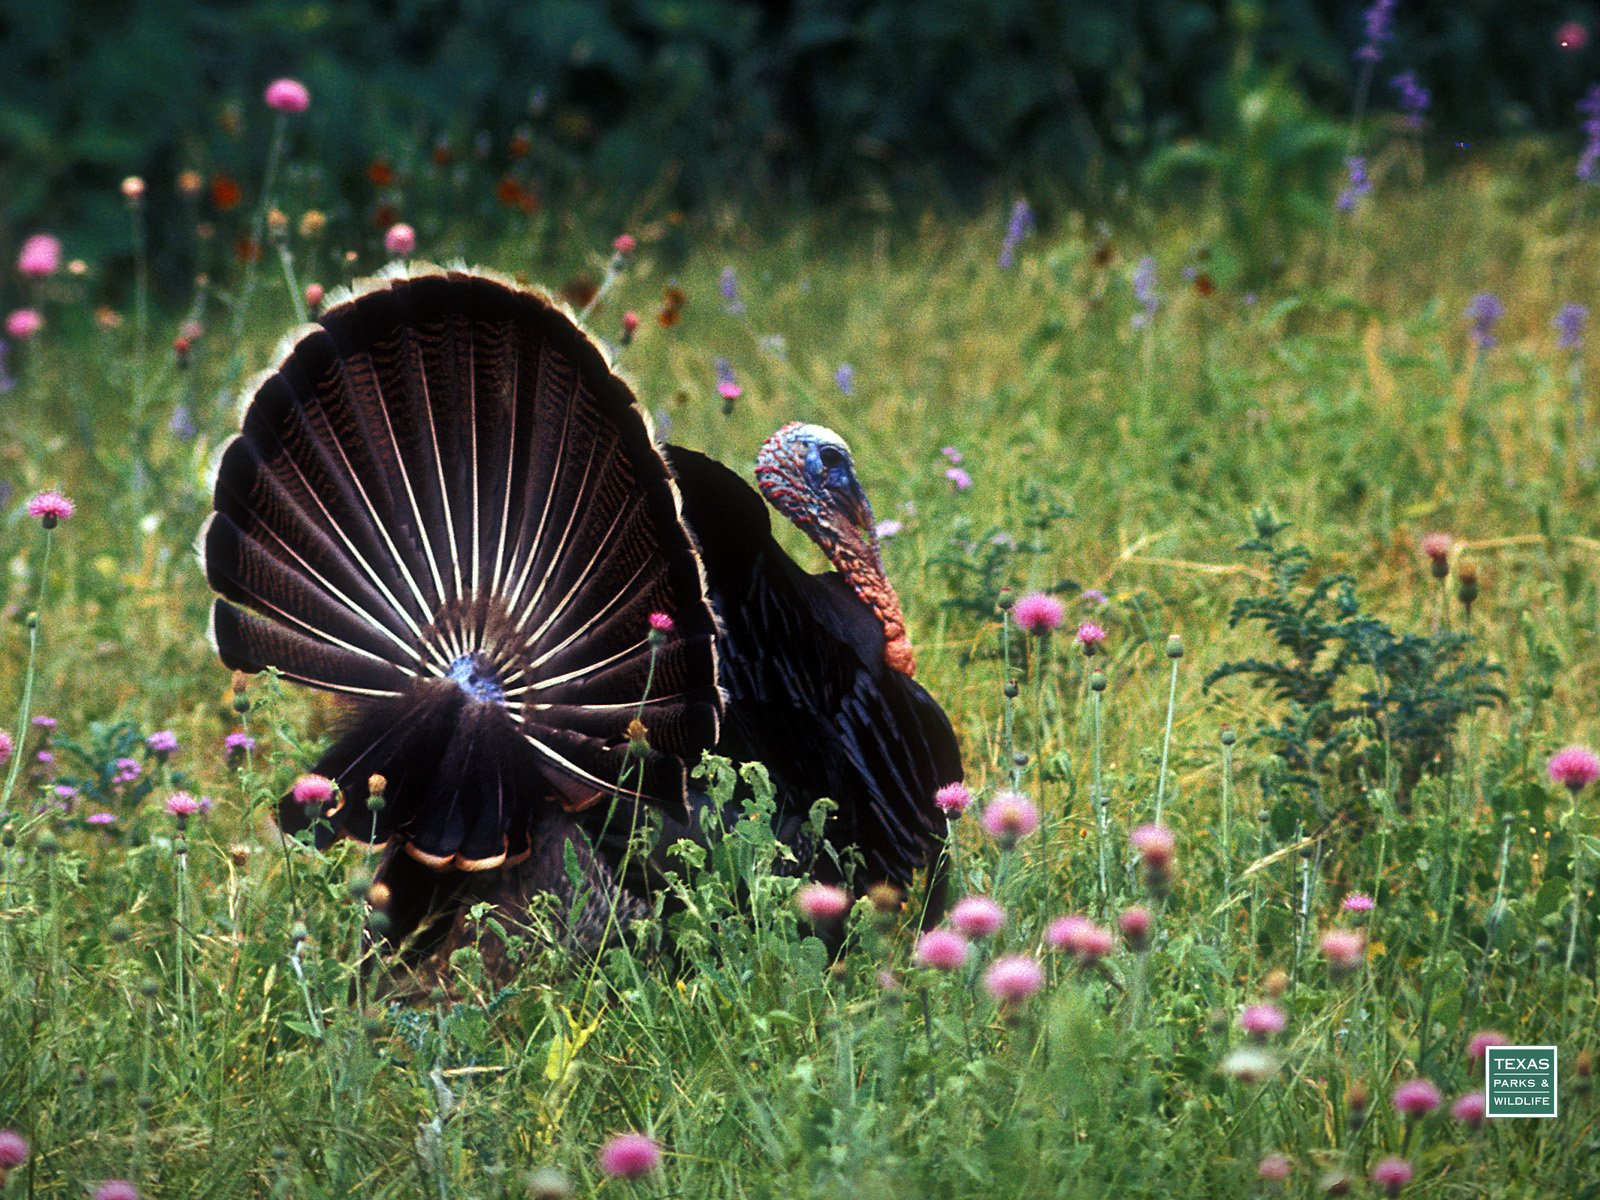 Turkey hunting wallpaper for computer wallpapersafari - Desktop wallpaper 1600x1200 ...